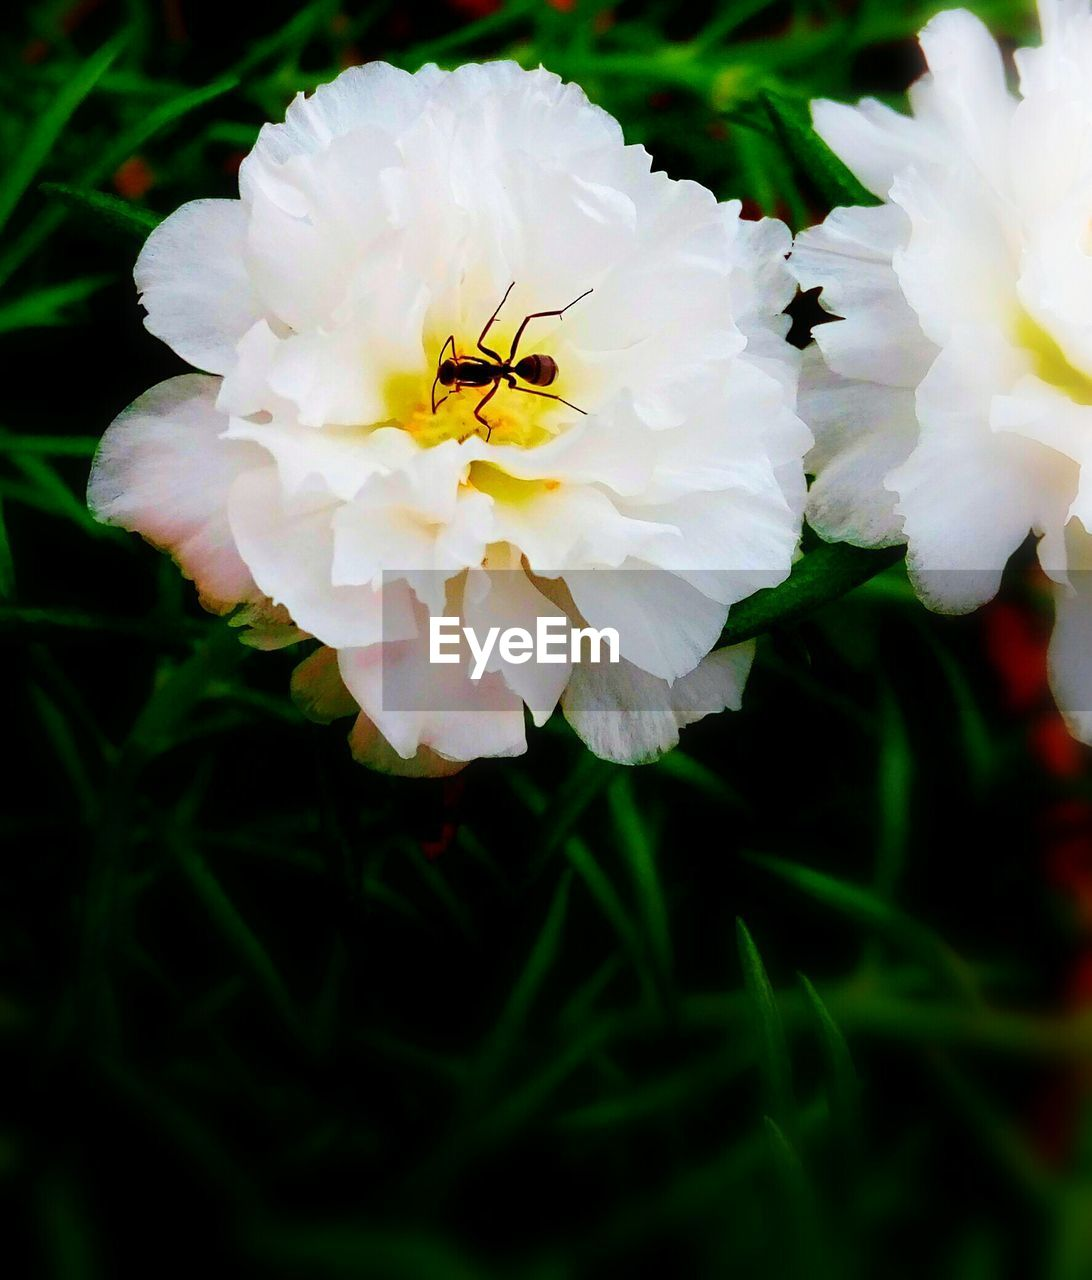 flower, petal, animal themes, one animal, beauty in nature, insect, fragility, growth, nature, flower head, animals in the wild, plant, yellow, no people, close-up, freshness, outdoors, day, blooming